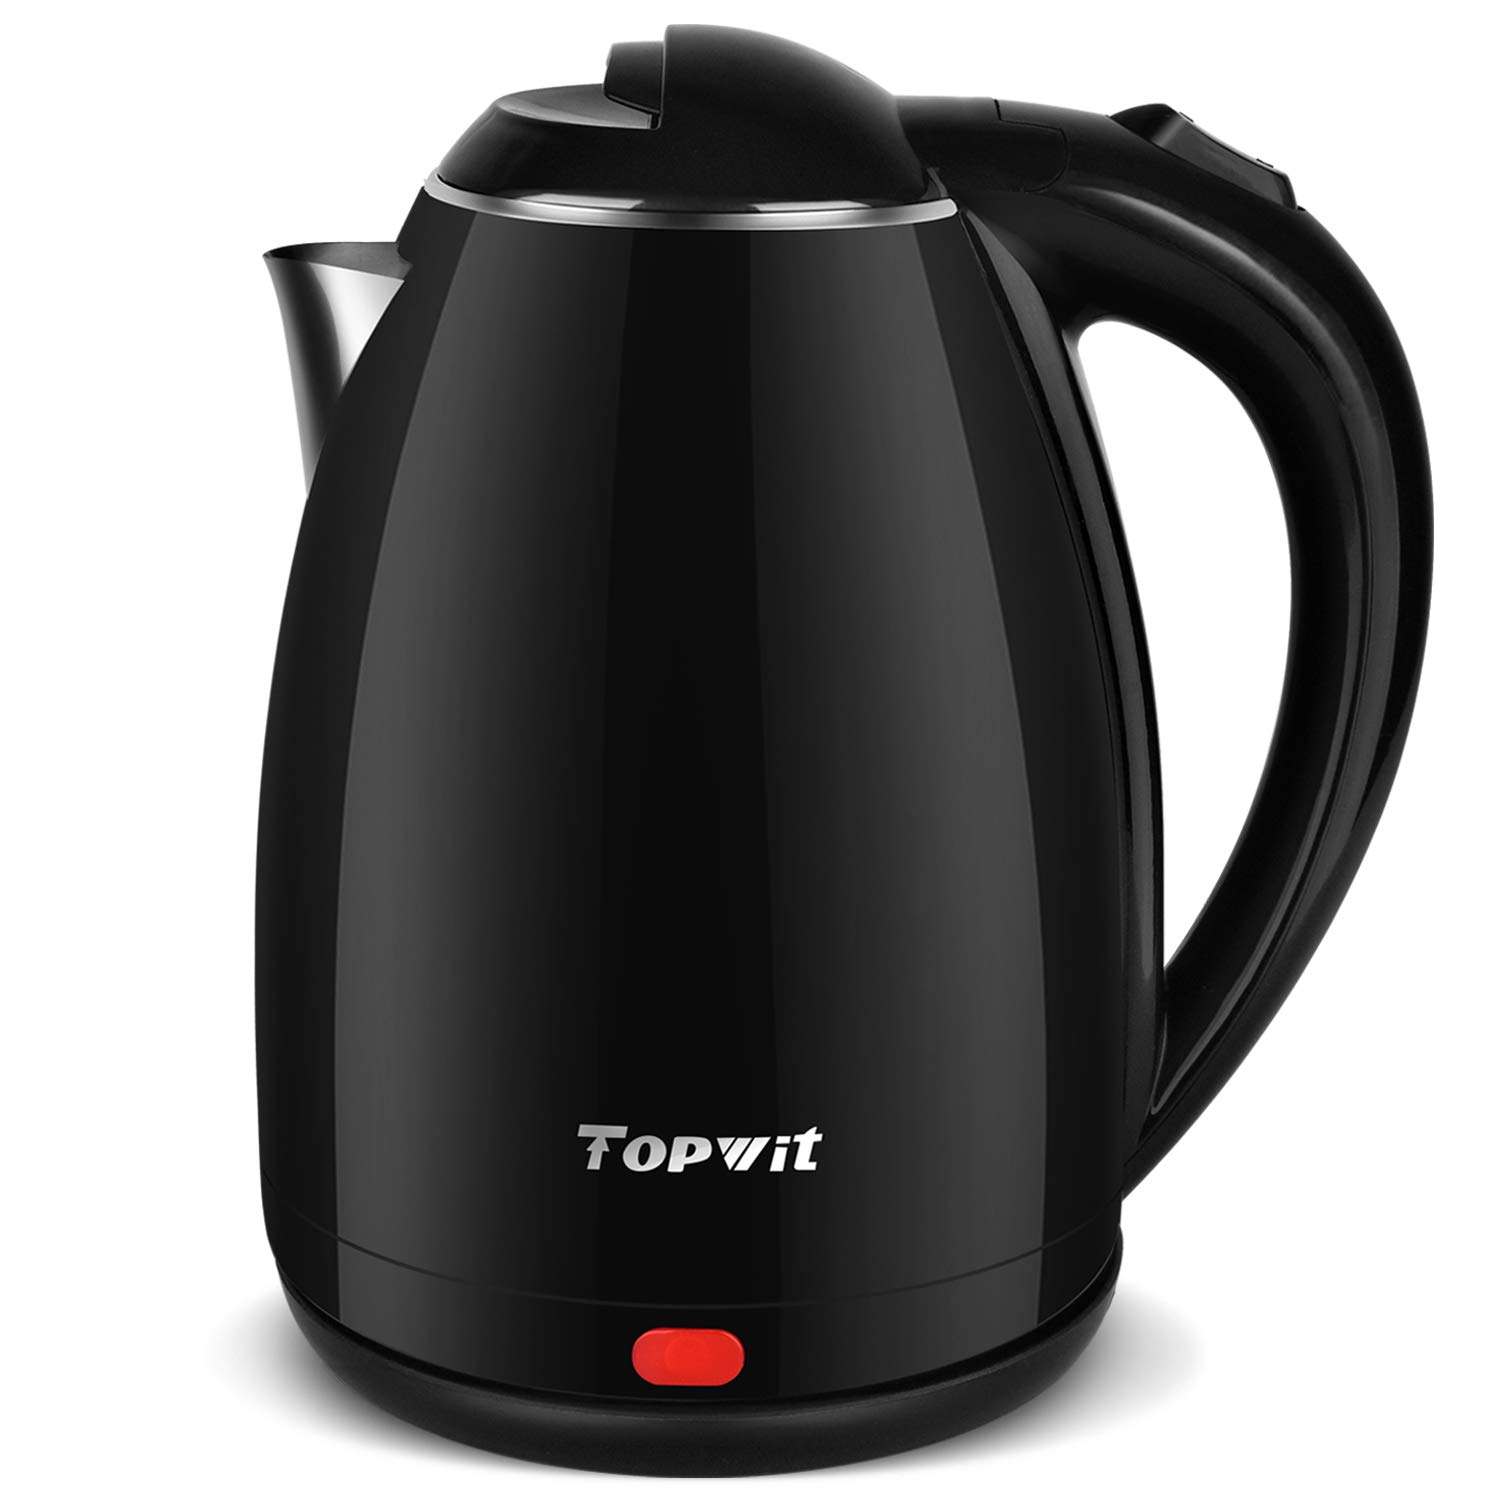 Topwit Electric Kettle Stainless Steel Interior Cordless, Electric Tea Kettle with Auto Shut-Off and Boil Dry Protection, 2 liter